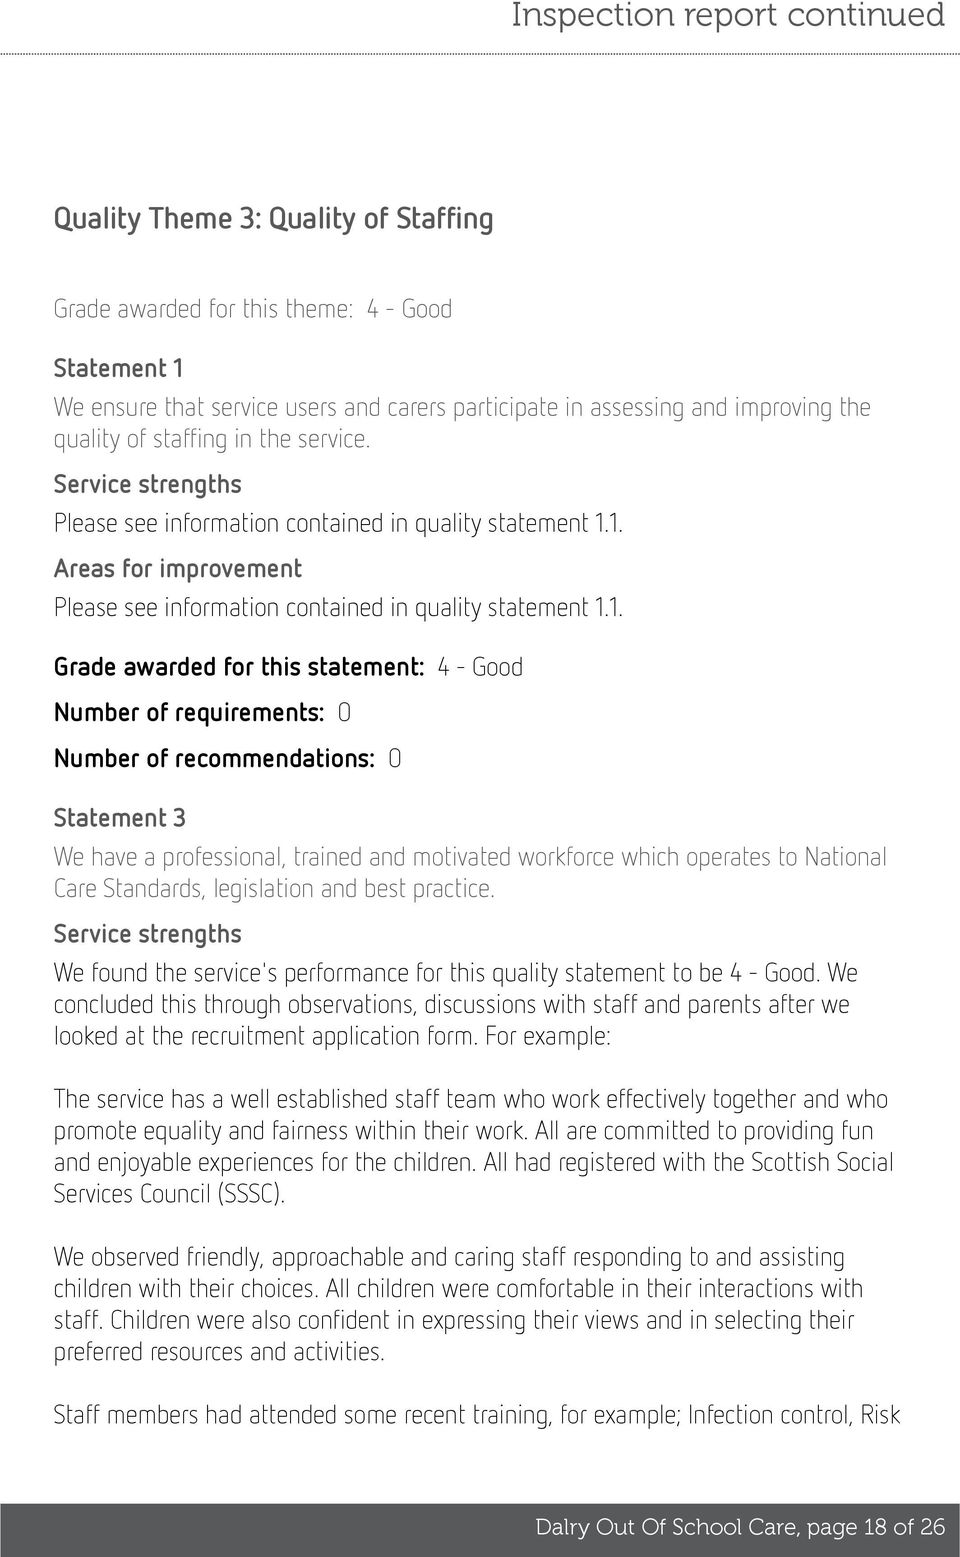 1. Areas for improvement Please see information contained in quality statement 1.1. Grade awarded for this statement: 4 - Good Number of requirements: 0 Number of recommendations: 0 Statement 3 We